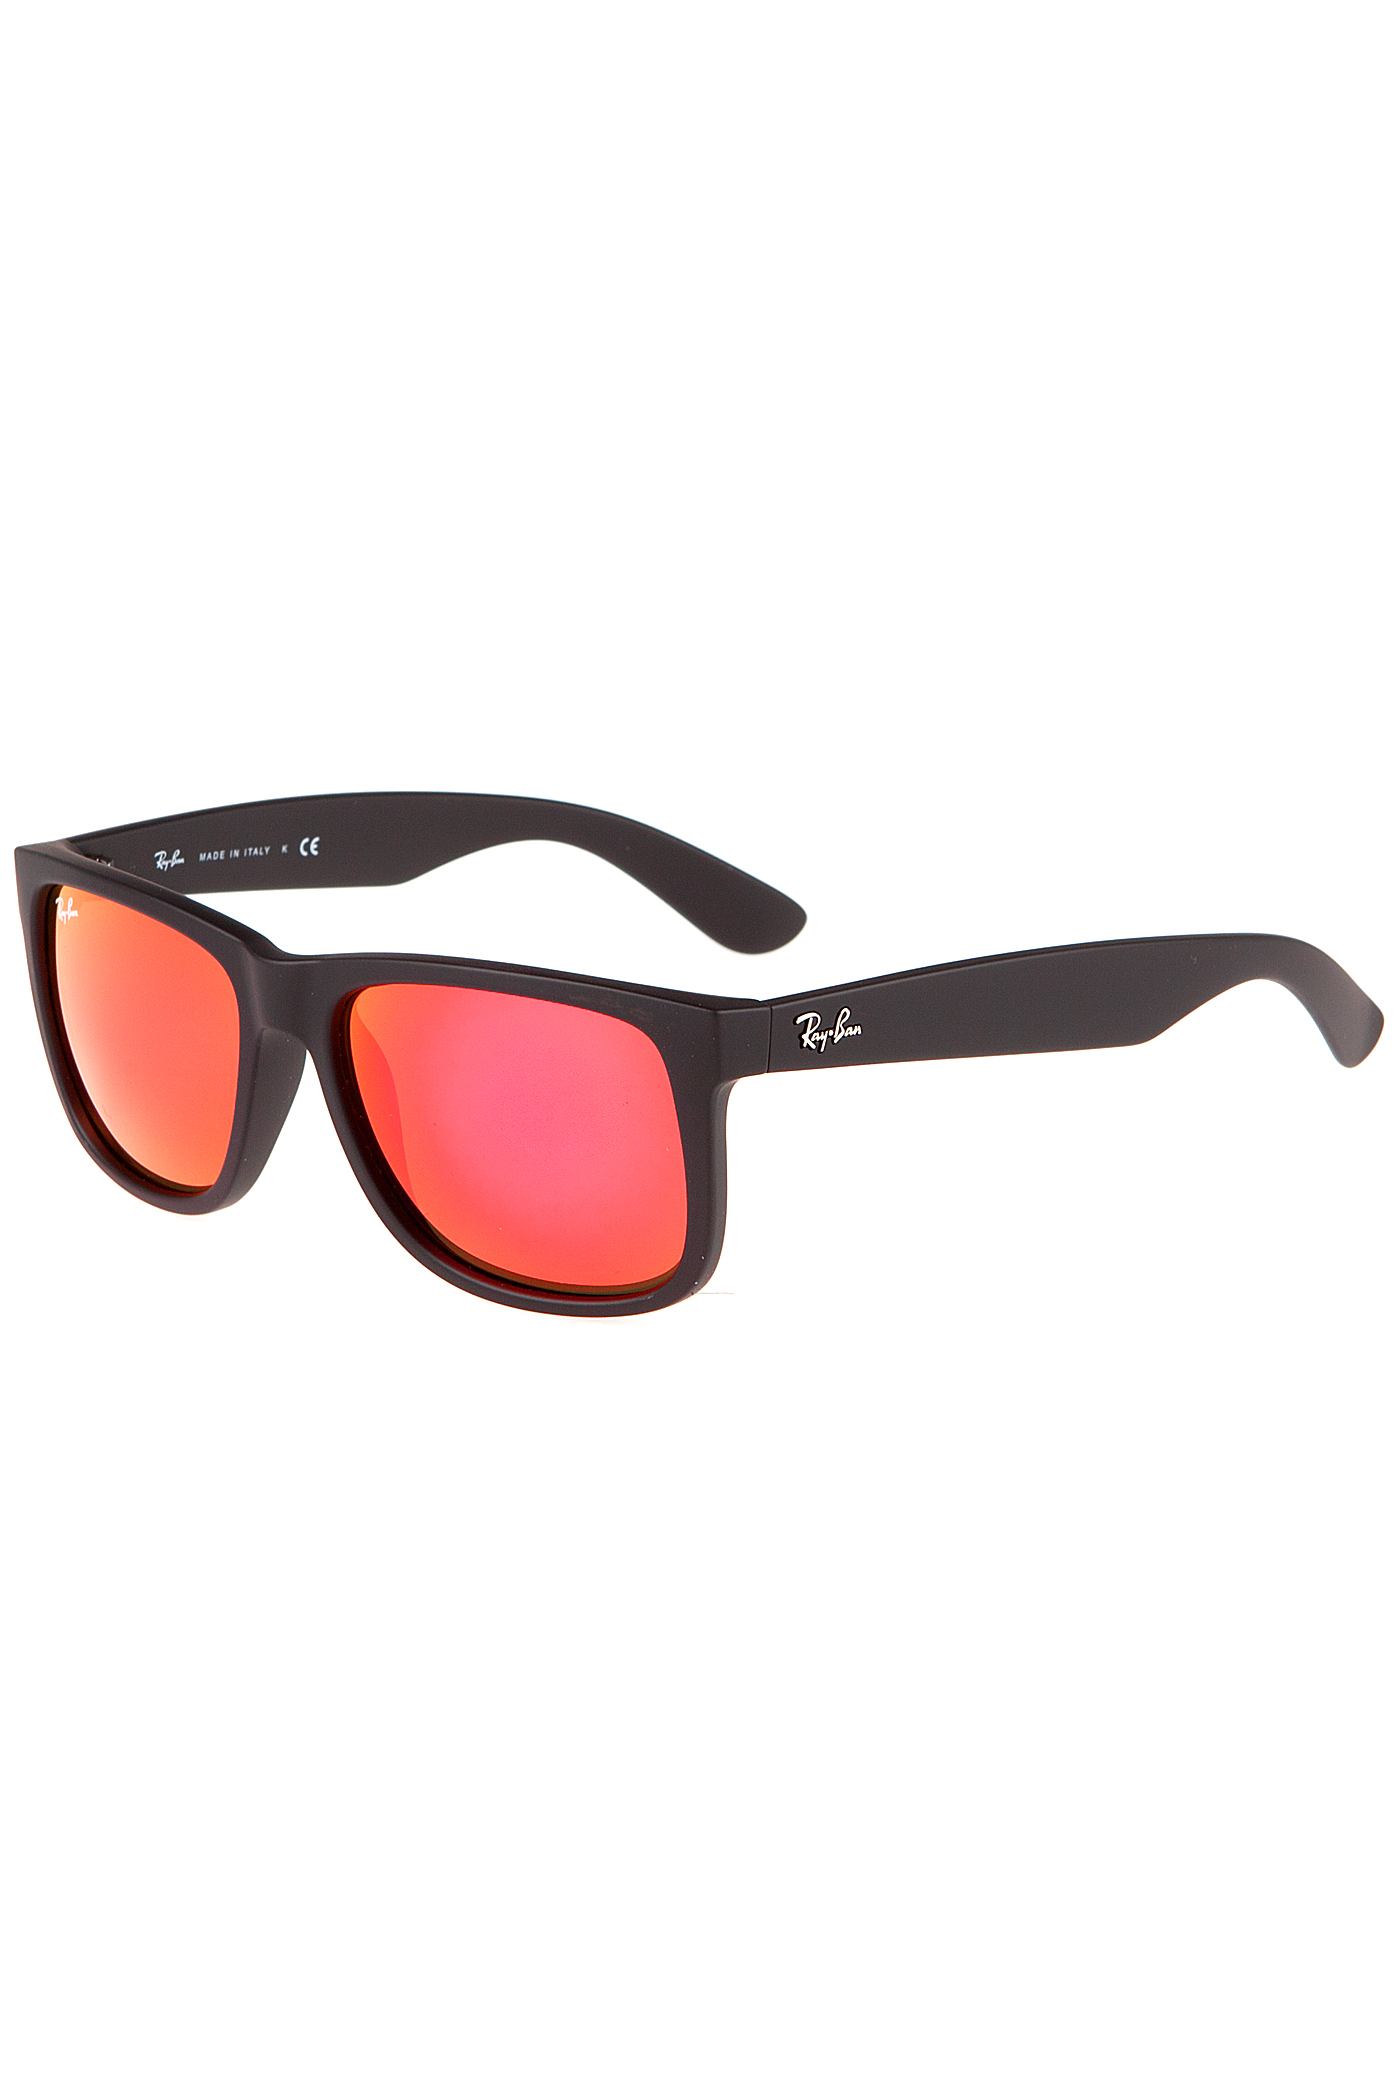 1d93a6a14a Ray Ban Justin Black Rubber « Heritage Malta